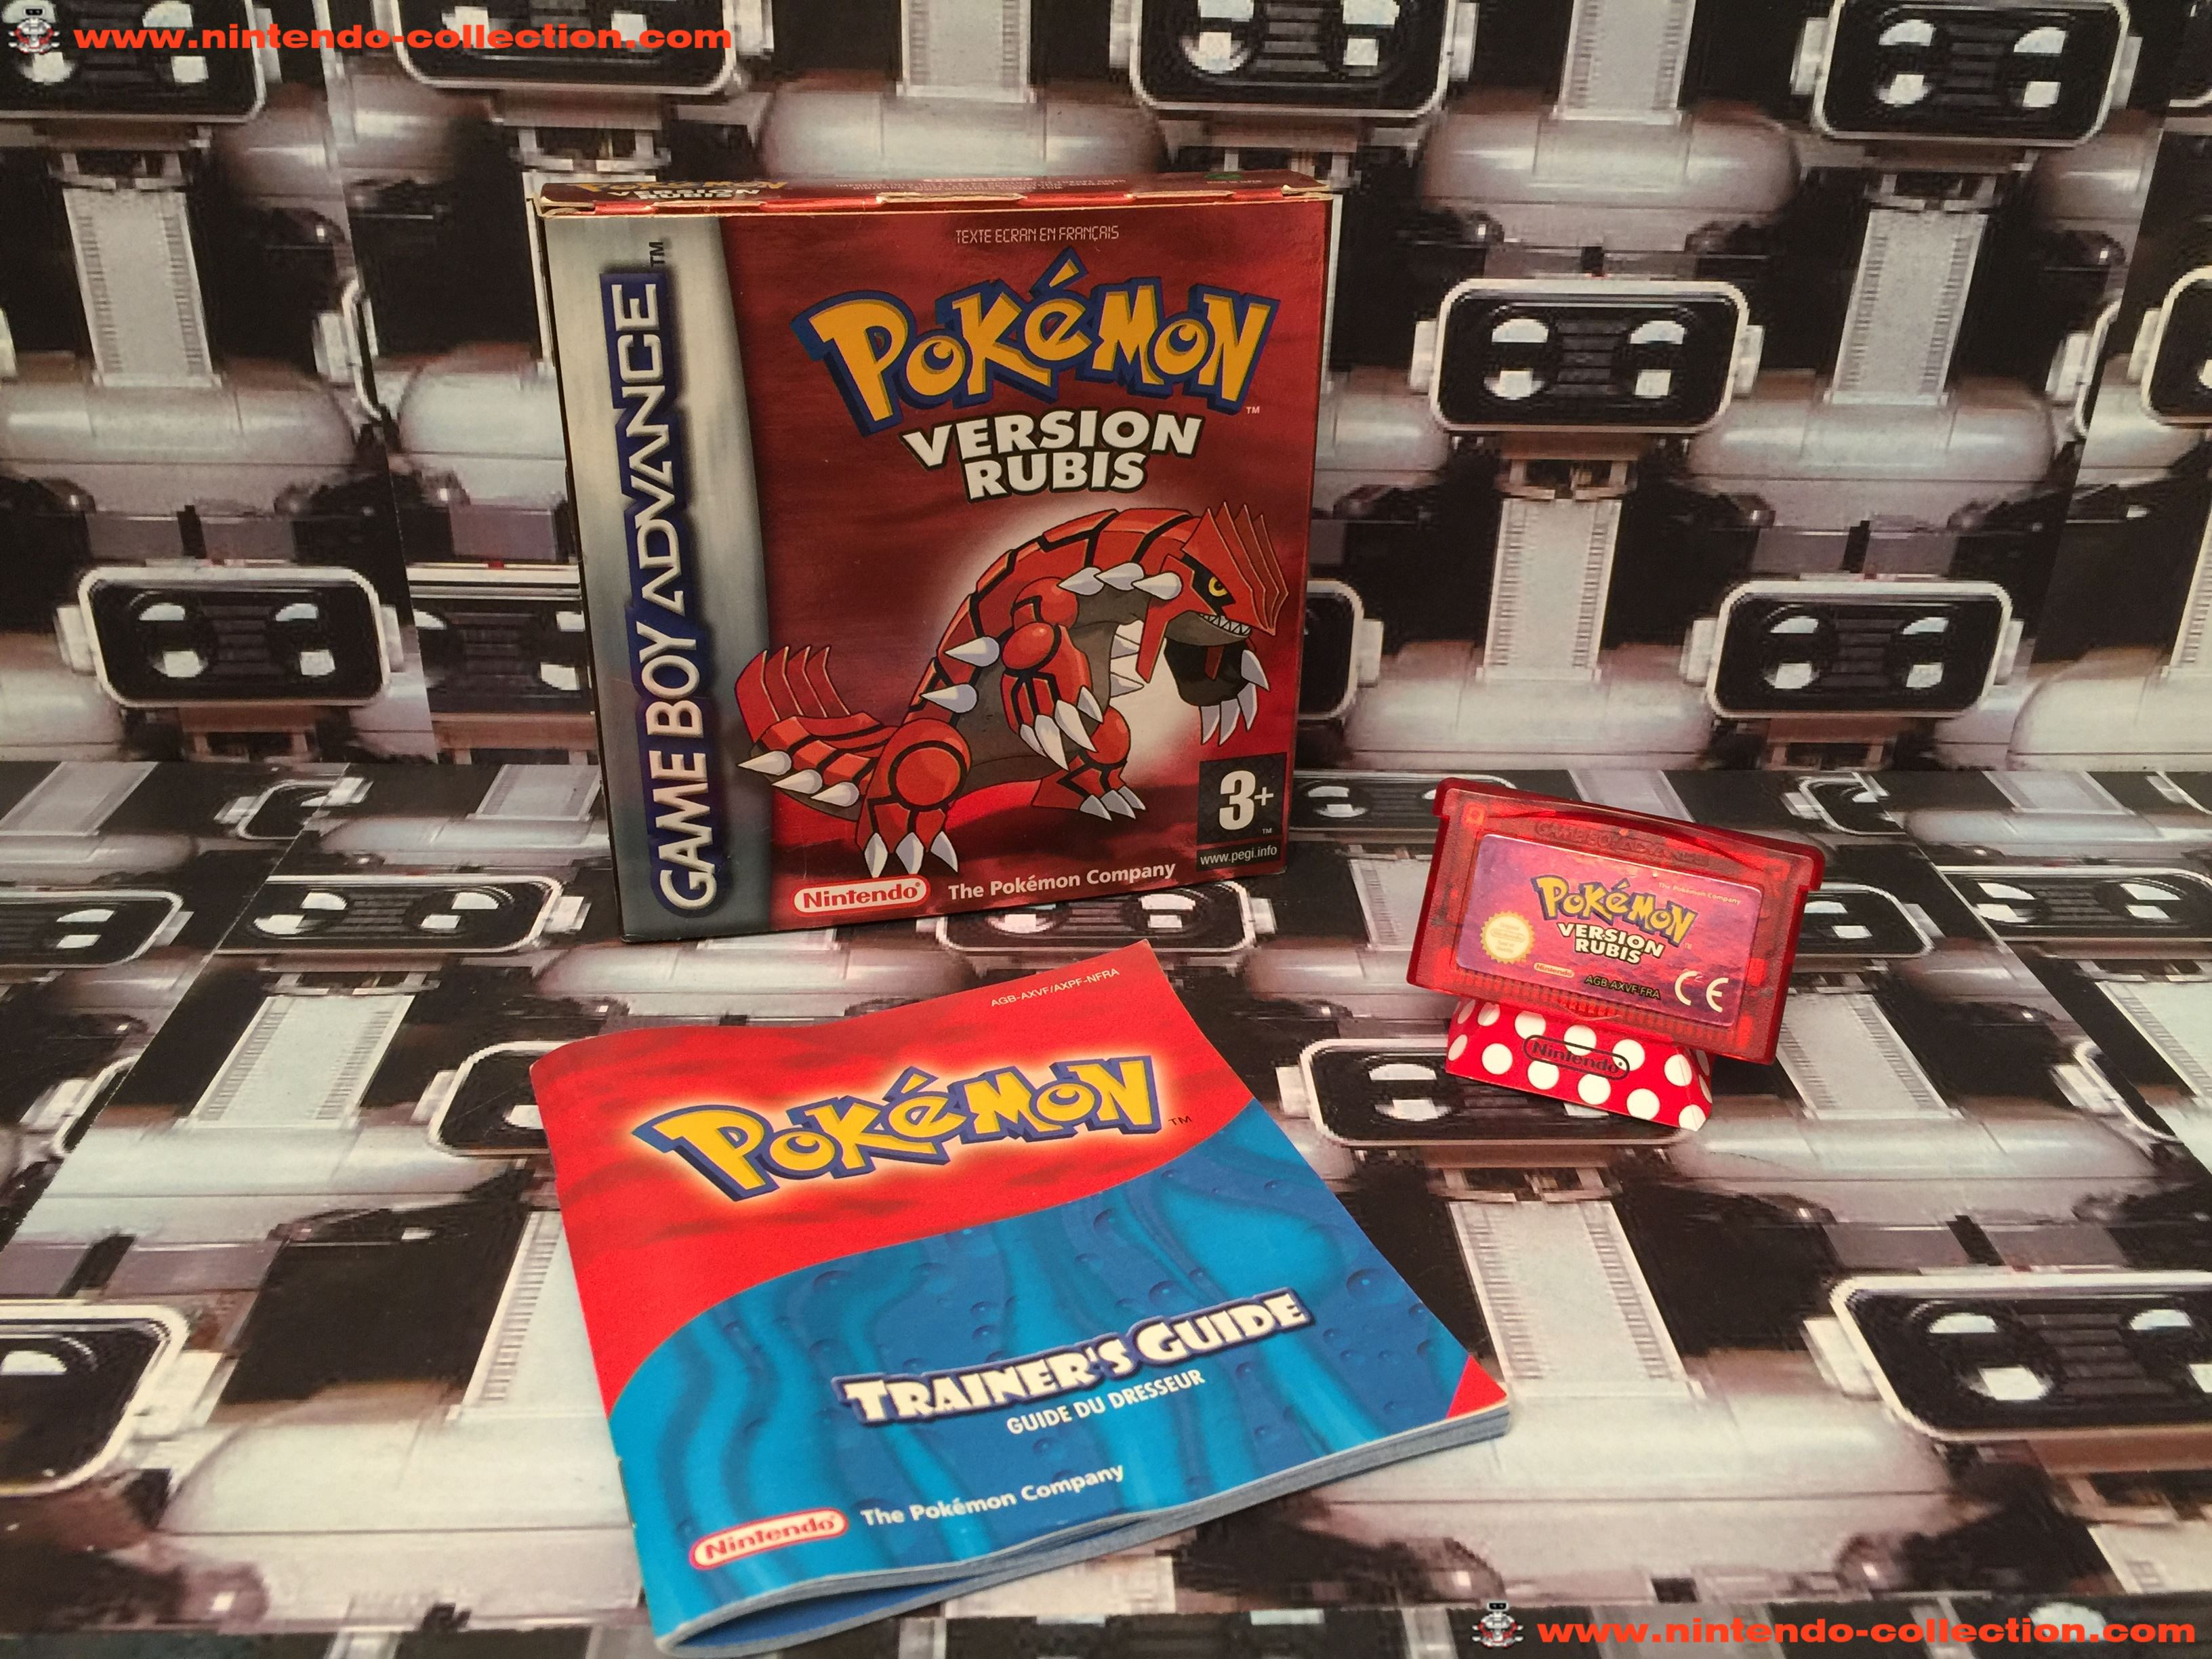 www.nintendo-collection.com - Gameboy Advance GBA Game Jeux Pokemon Rubis French Francaise Version